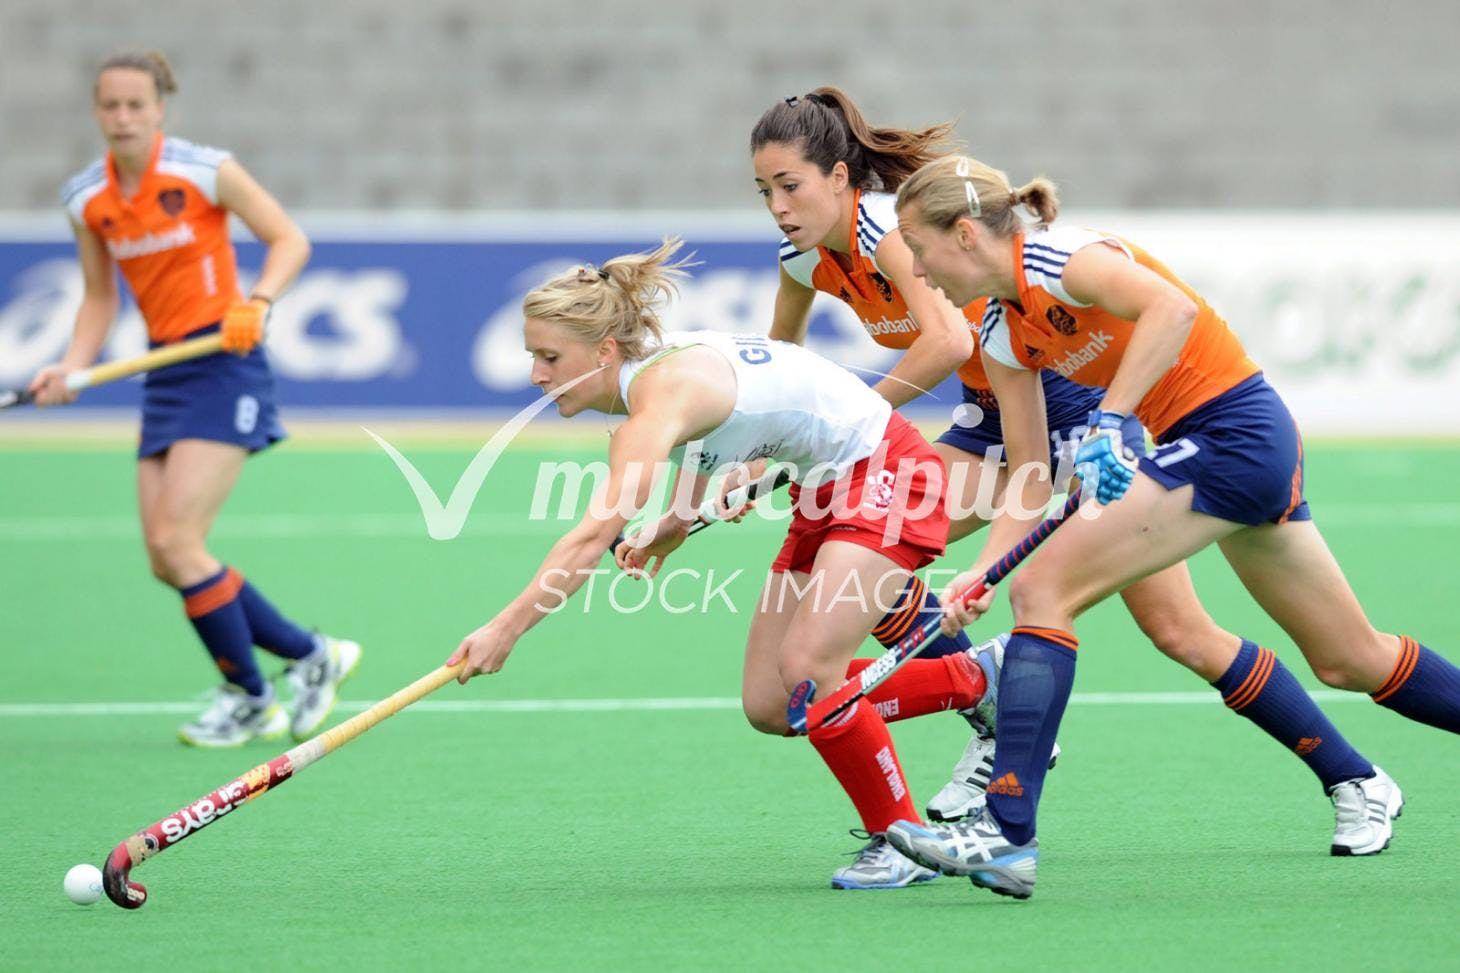 Langley Park Sports Centre Outdoor | Astroturf hockey pitch